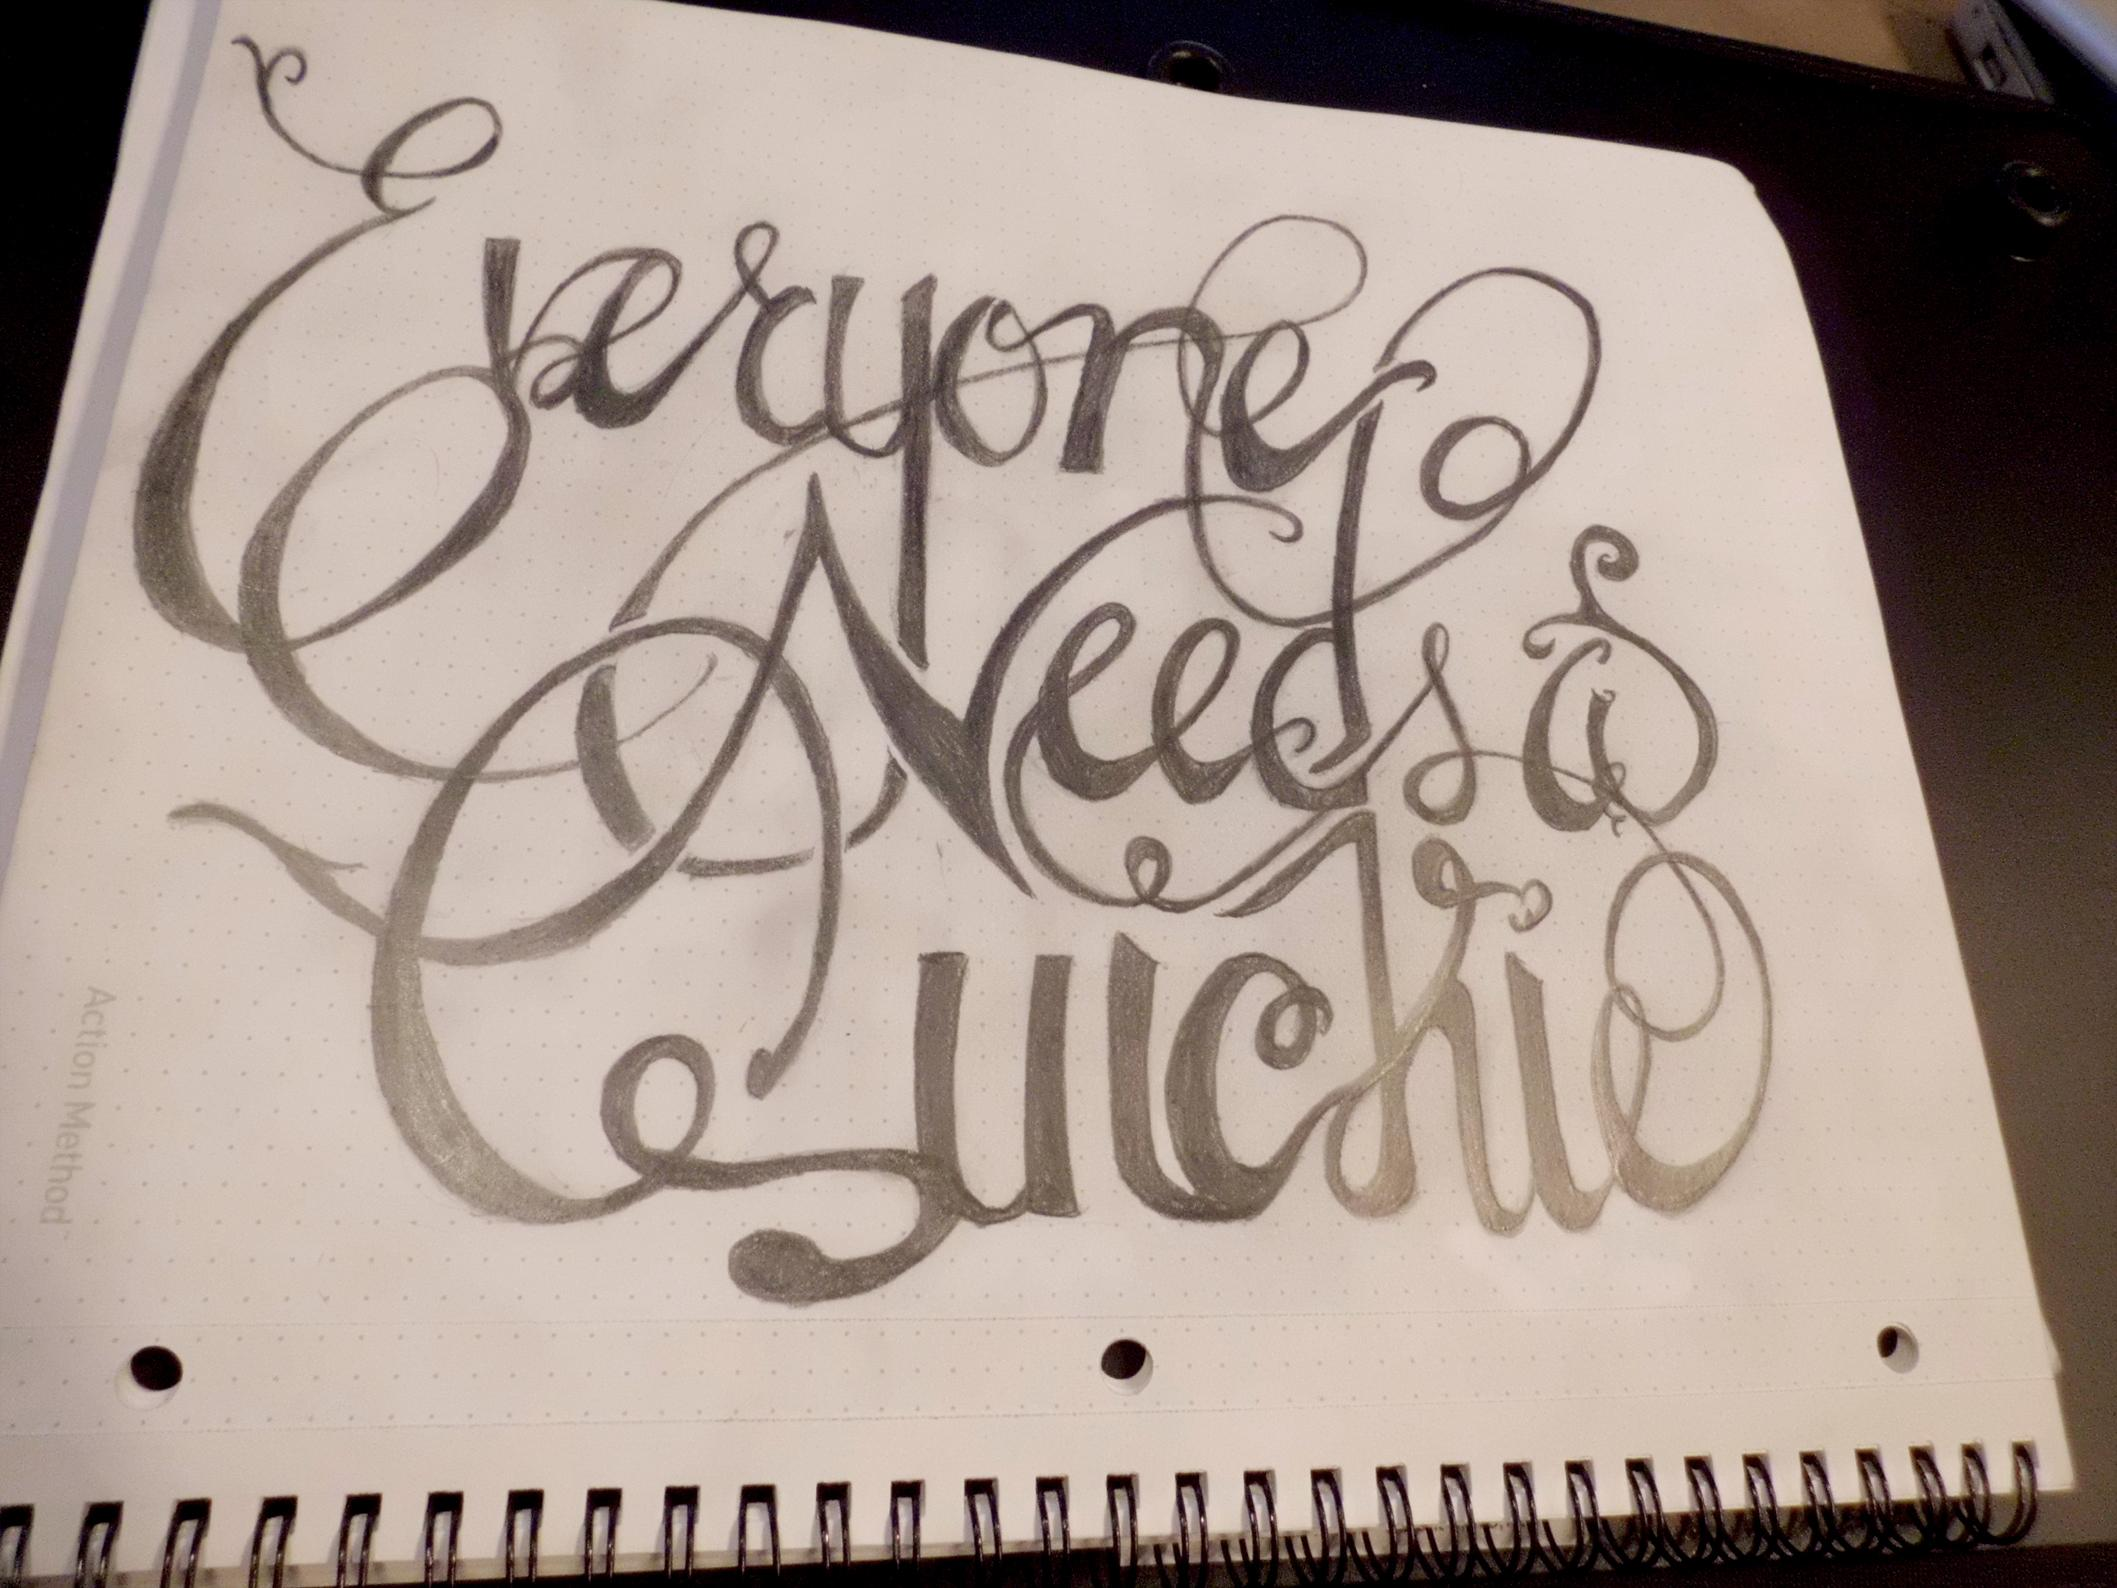 Everyone needs a quickie ;) - image 1 - student project